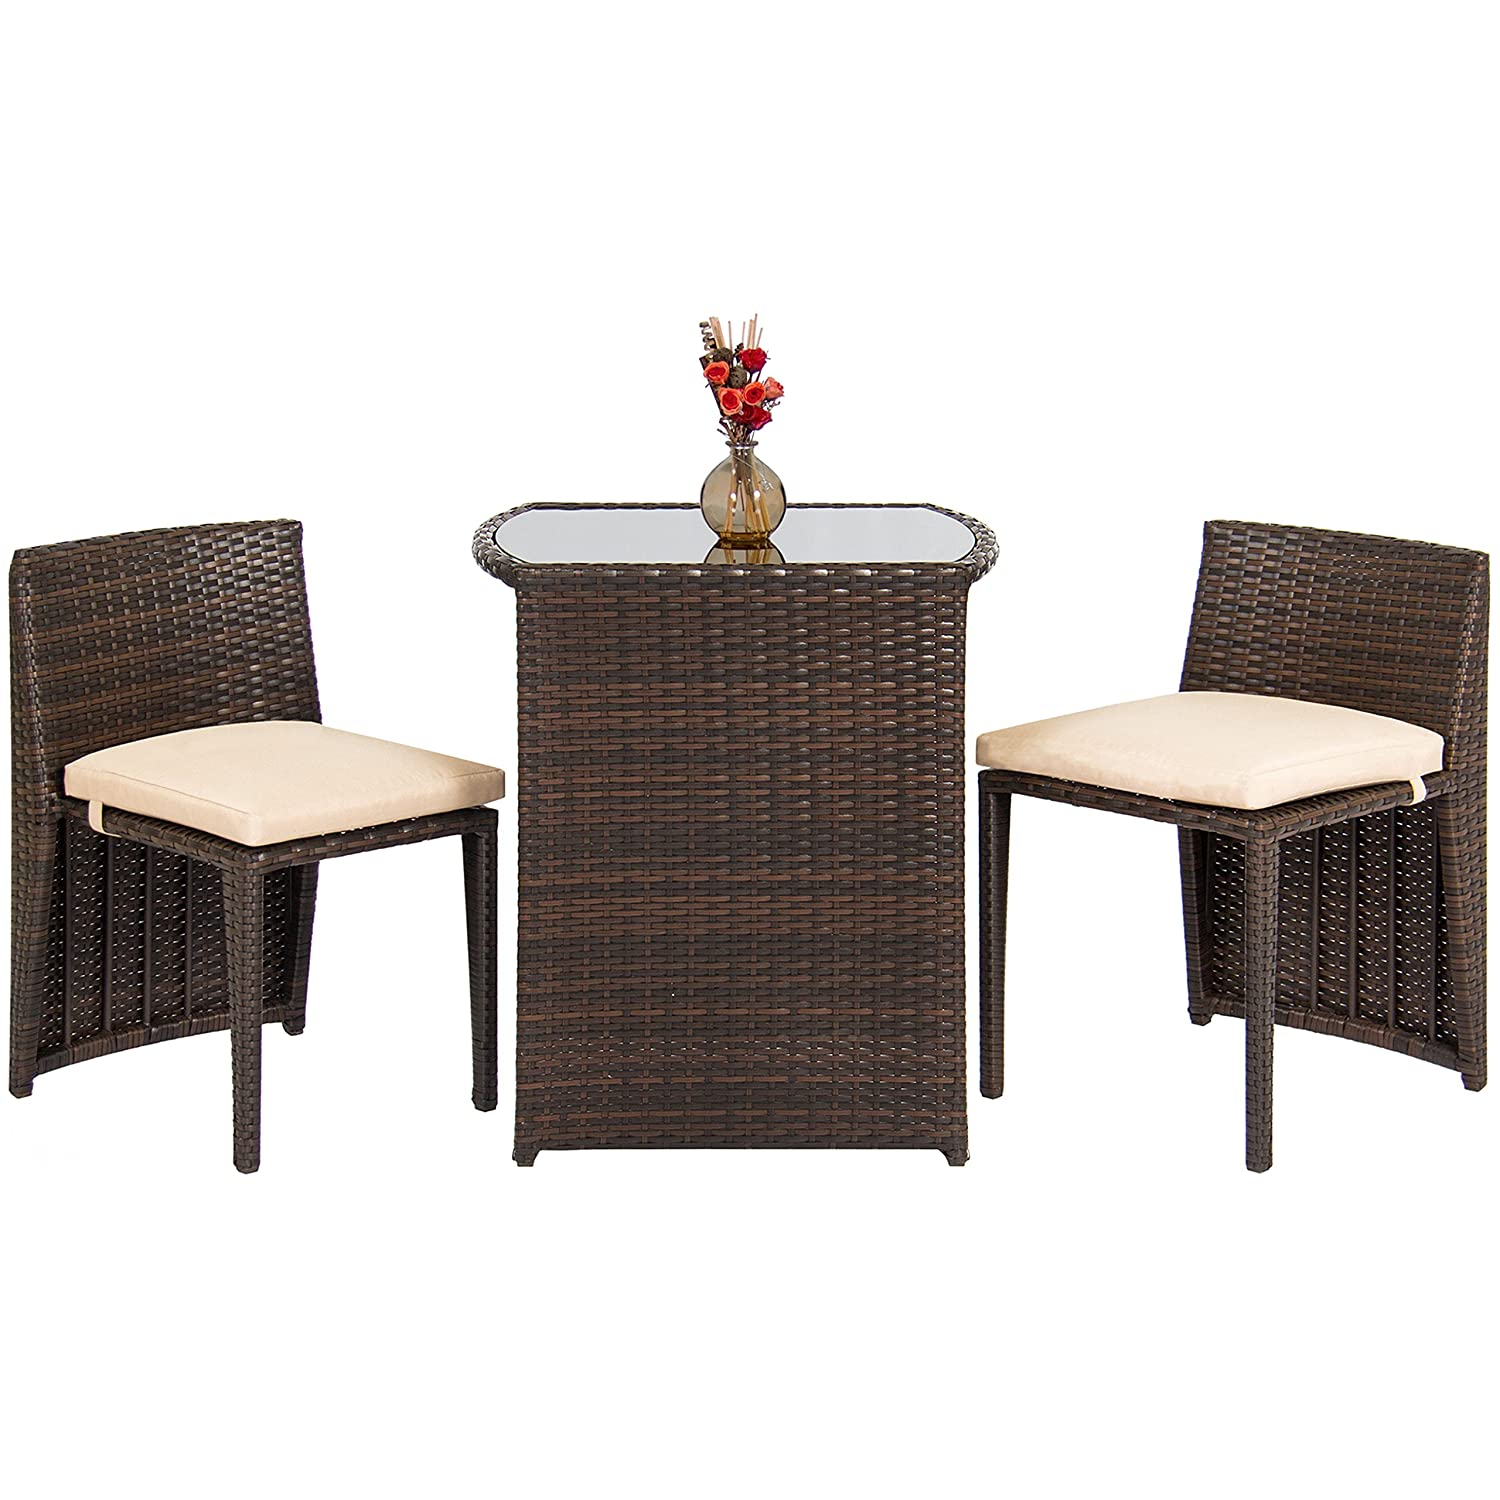 Amazon.com: Best Choice Products 3-Piece Wicker Bistro Set w/Glass ...